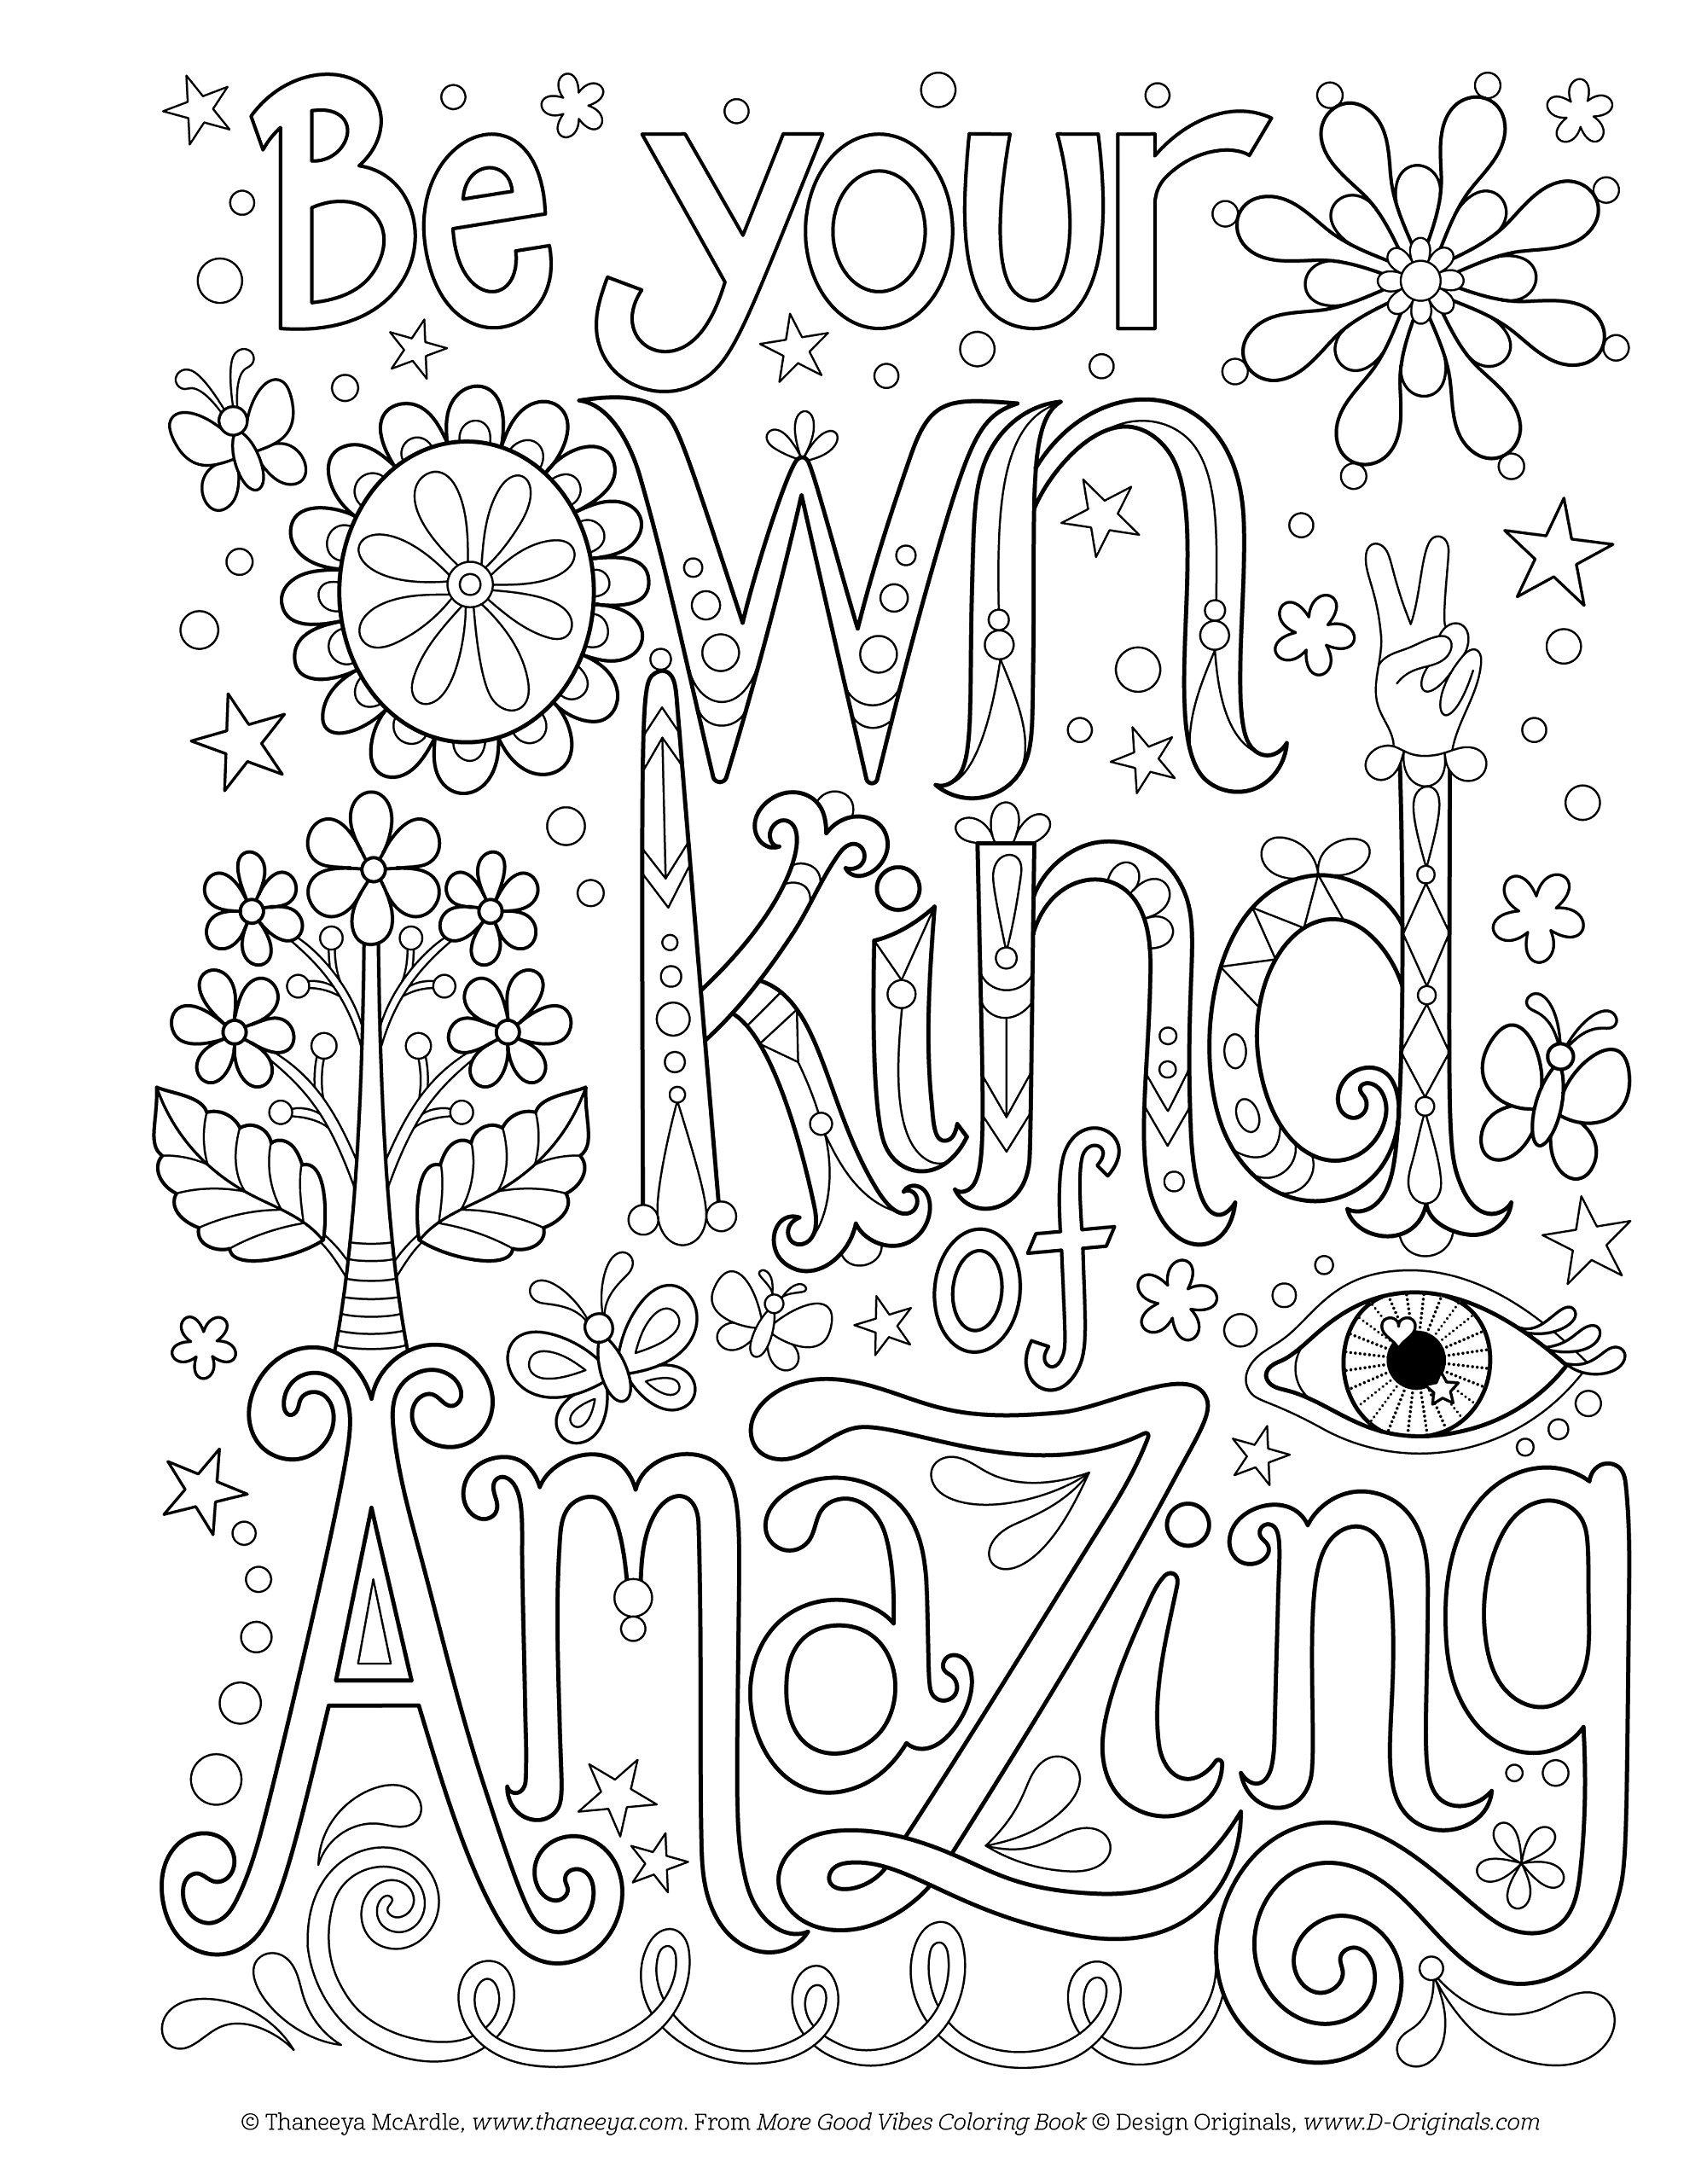 Amazon.com: More Good Vibes Coloring Book (Coloring is Fun) (Design ...